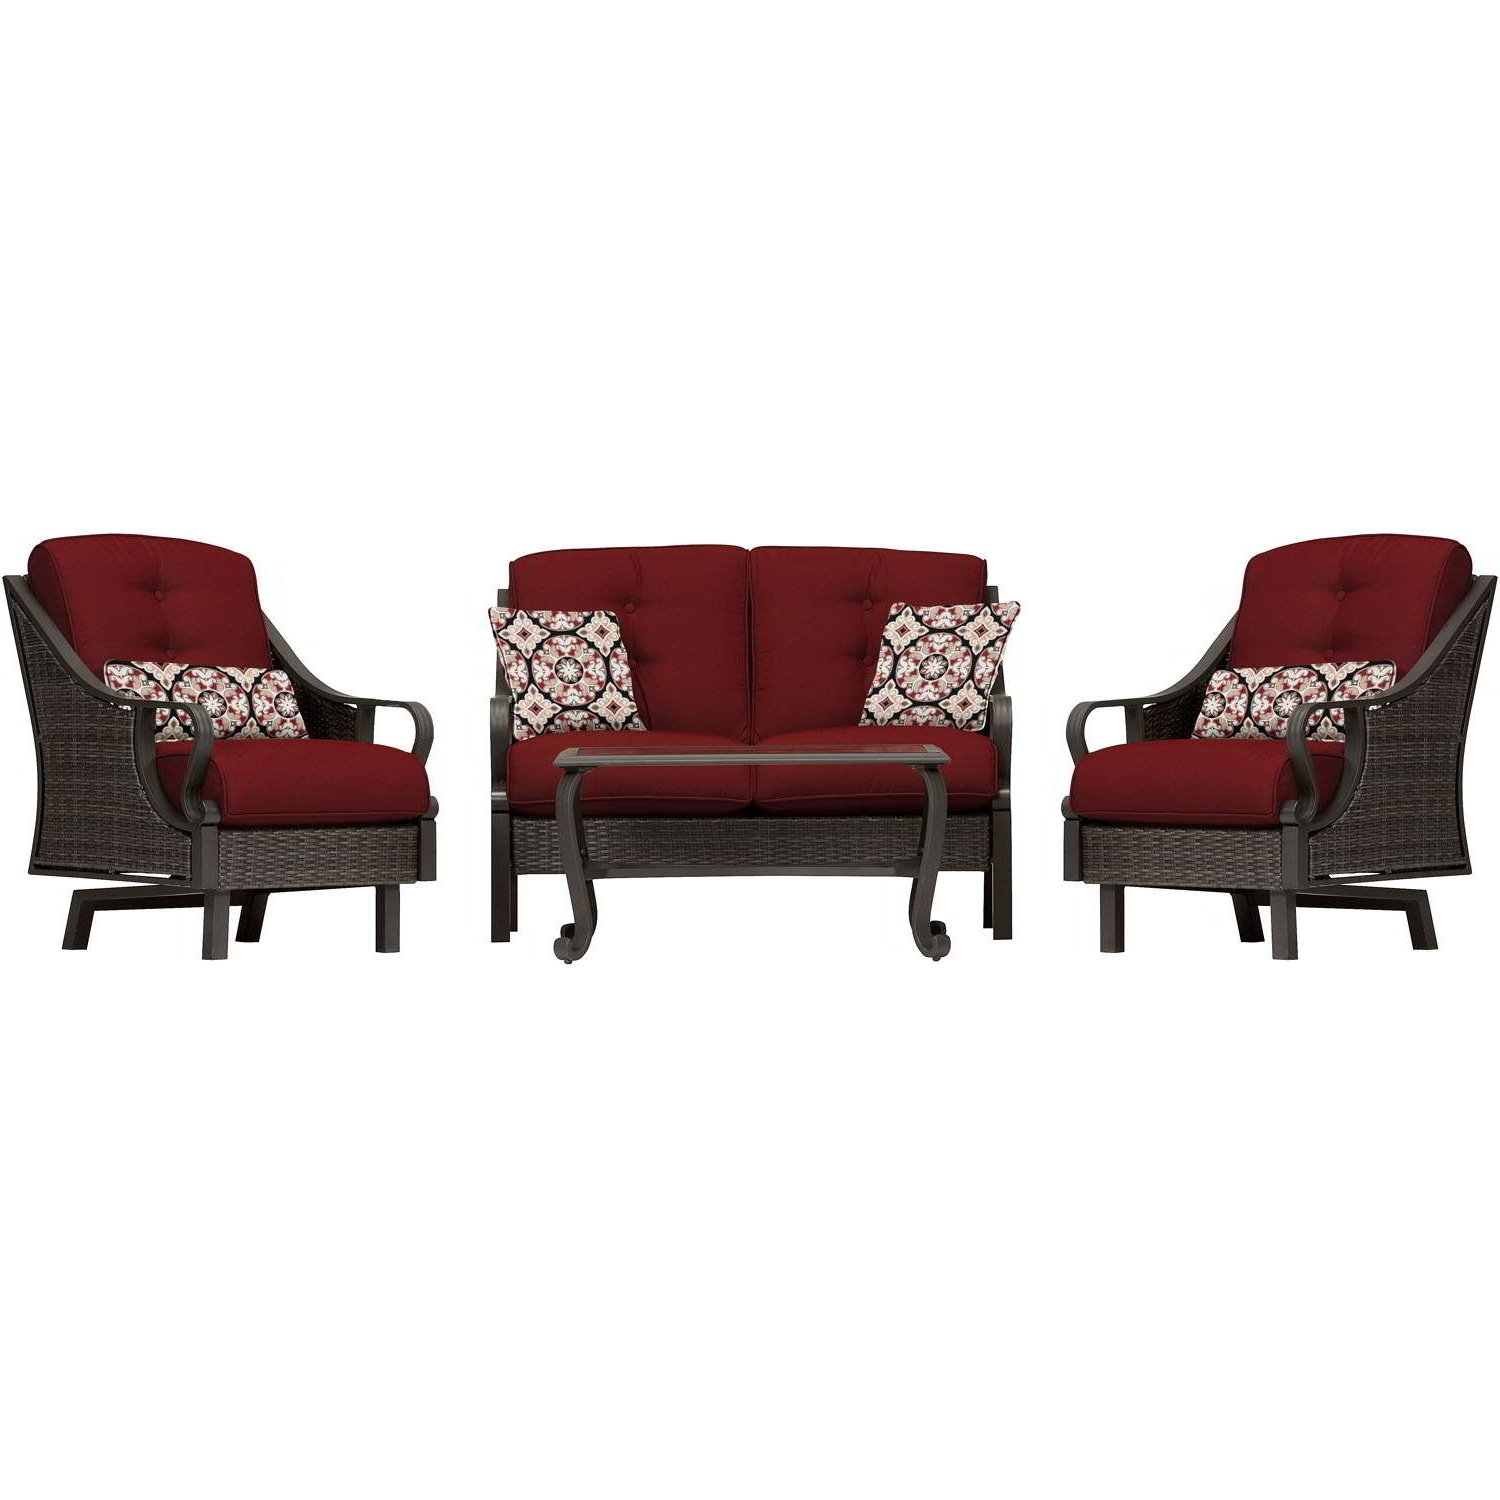 Trendy Ventura 4 Piece Seating Set In Crimson Red – Ventura4Pc Red With Regard To Wicker 4Pc Patio Conversation Sets With Navy Cushions (View 9 of 15)